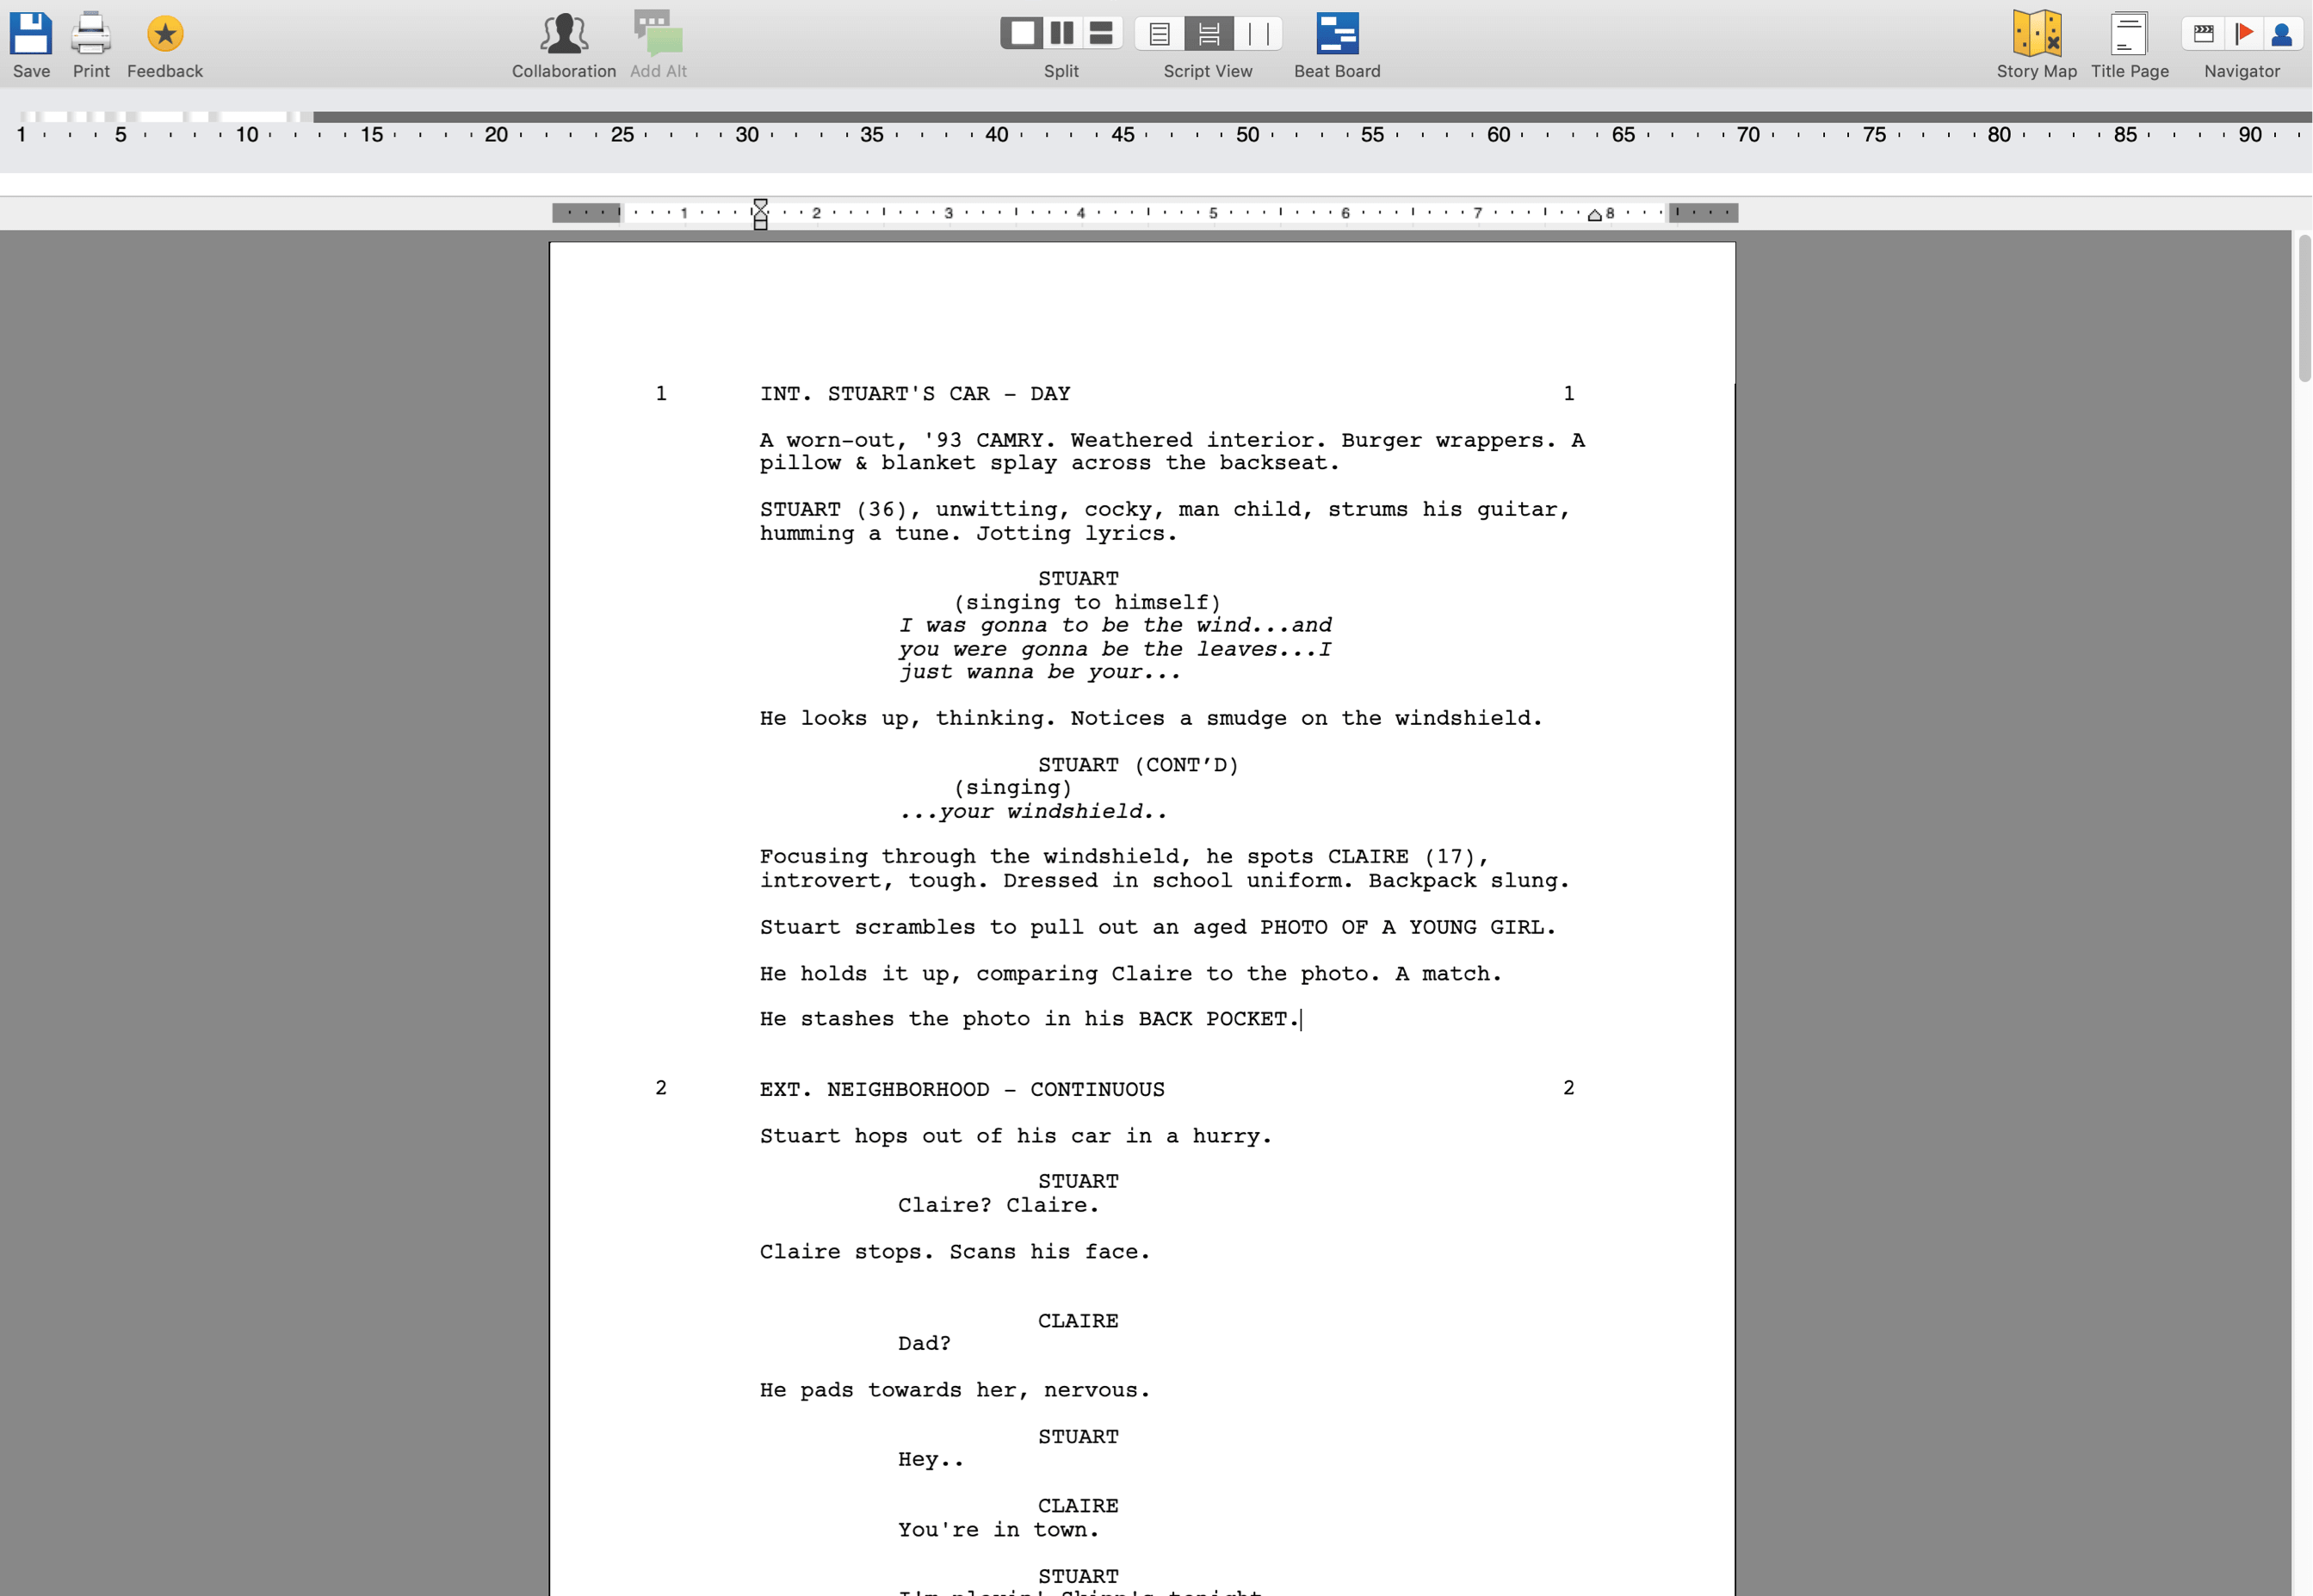 Best Alternative to Final Draft Screenwriting Application? Meet StudioBinder's Scriptwriting Software